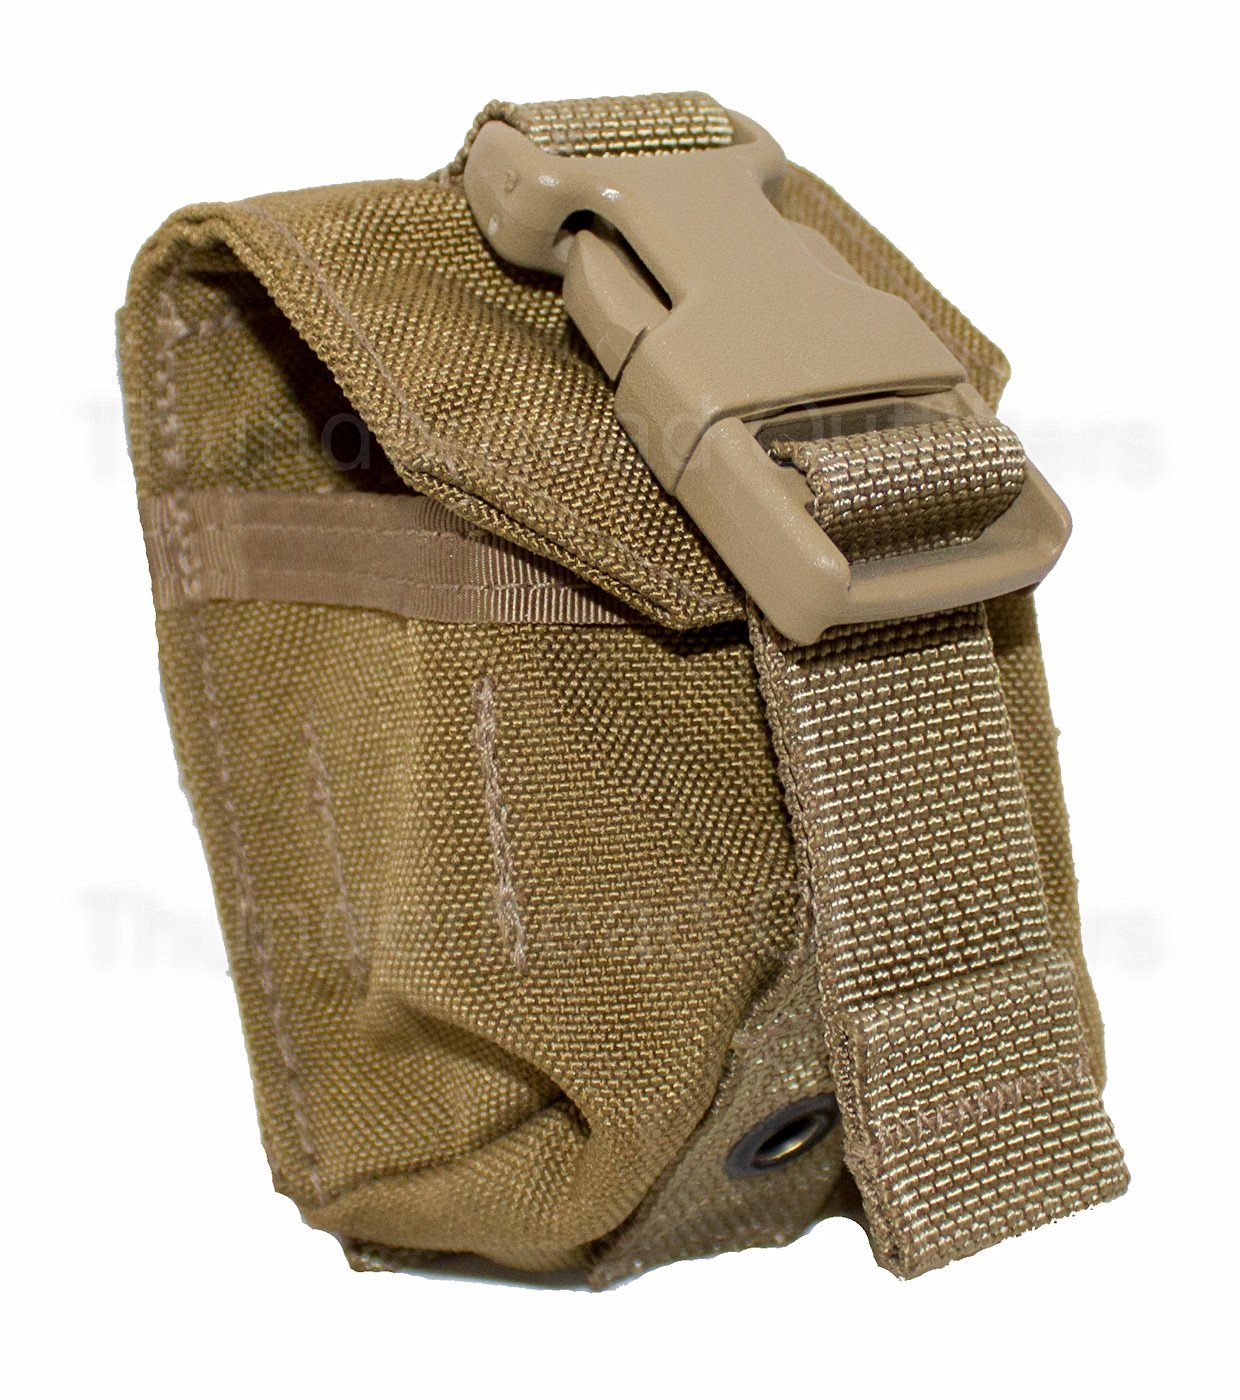 Eagle Industries Coyote Grenade Pouch MC-FGC-MS-COY US Military